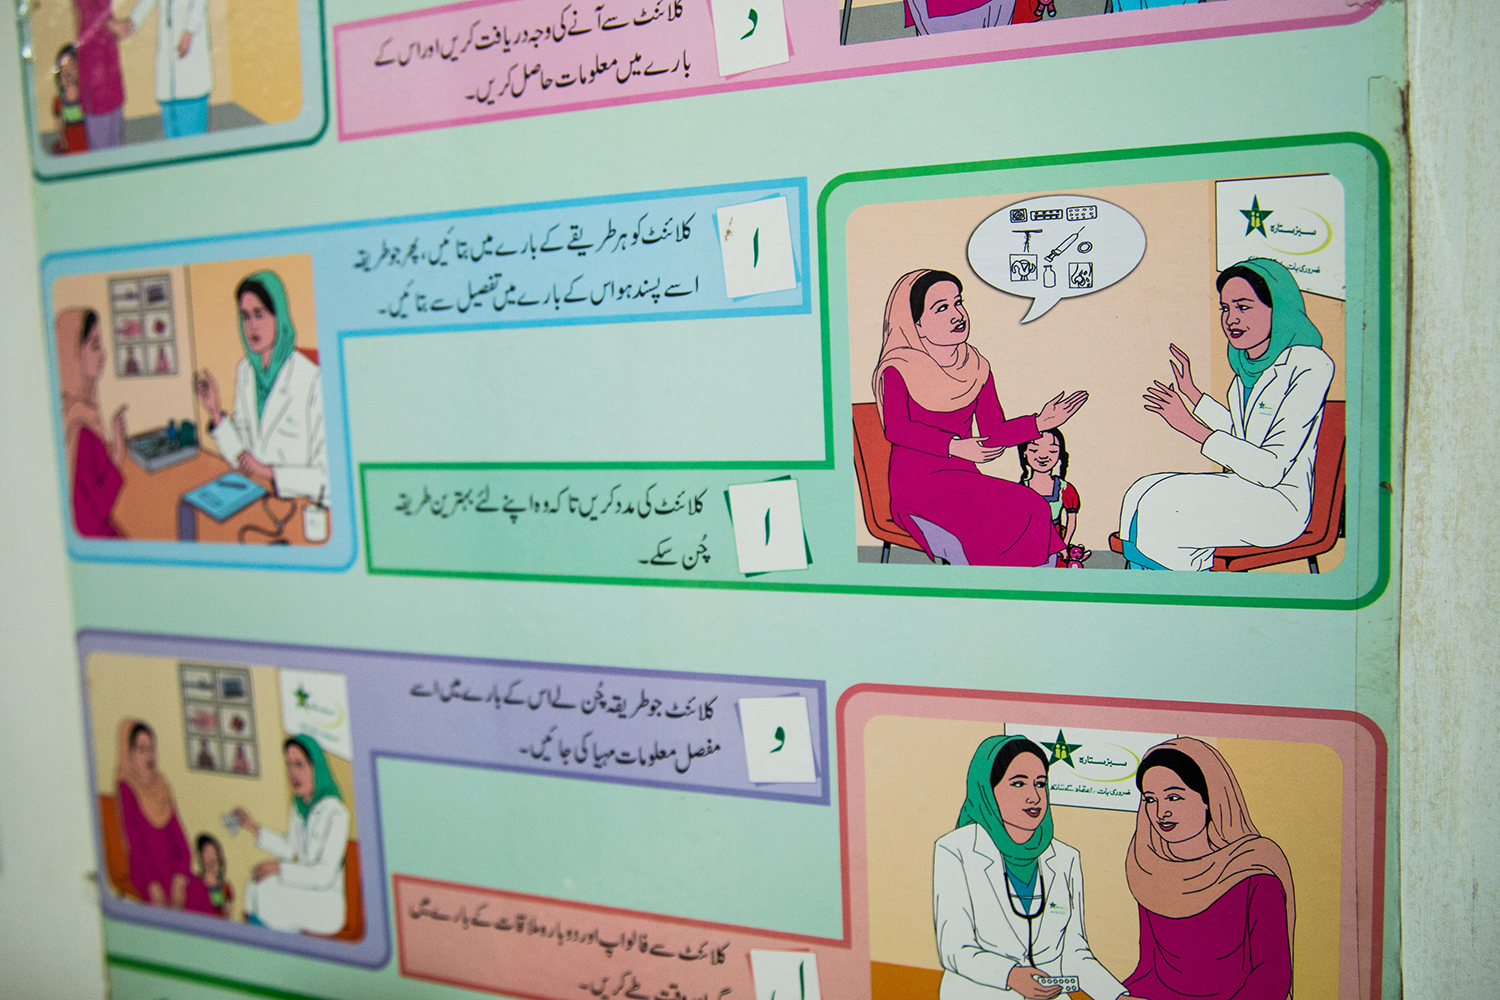 A poster about birth control in a women's health center in Islamabad.